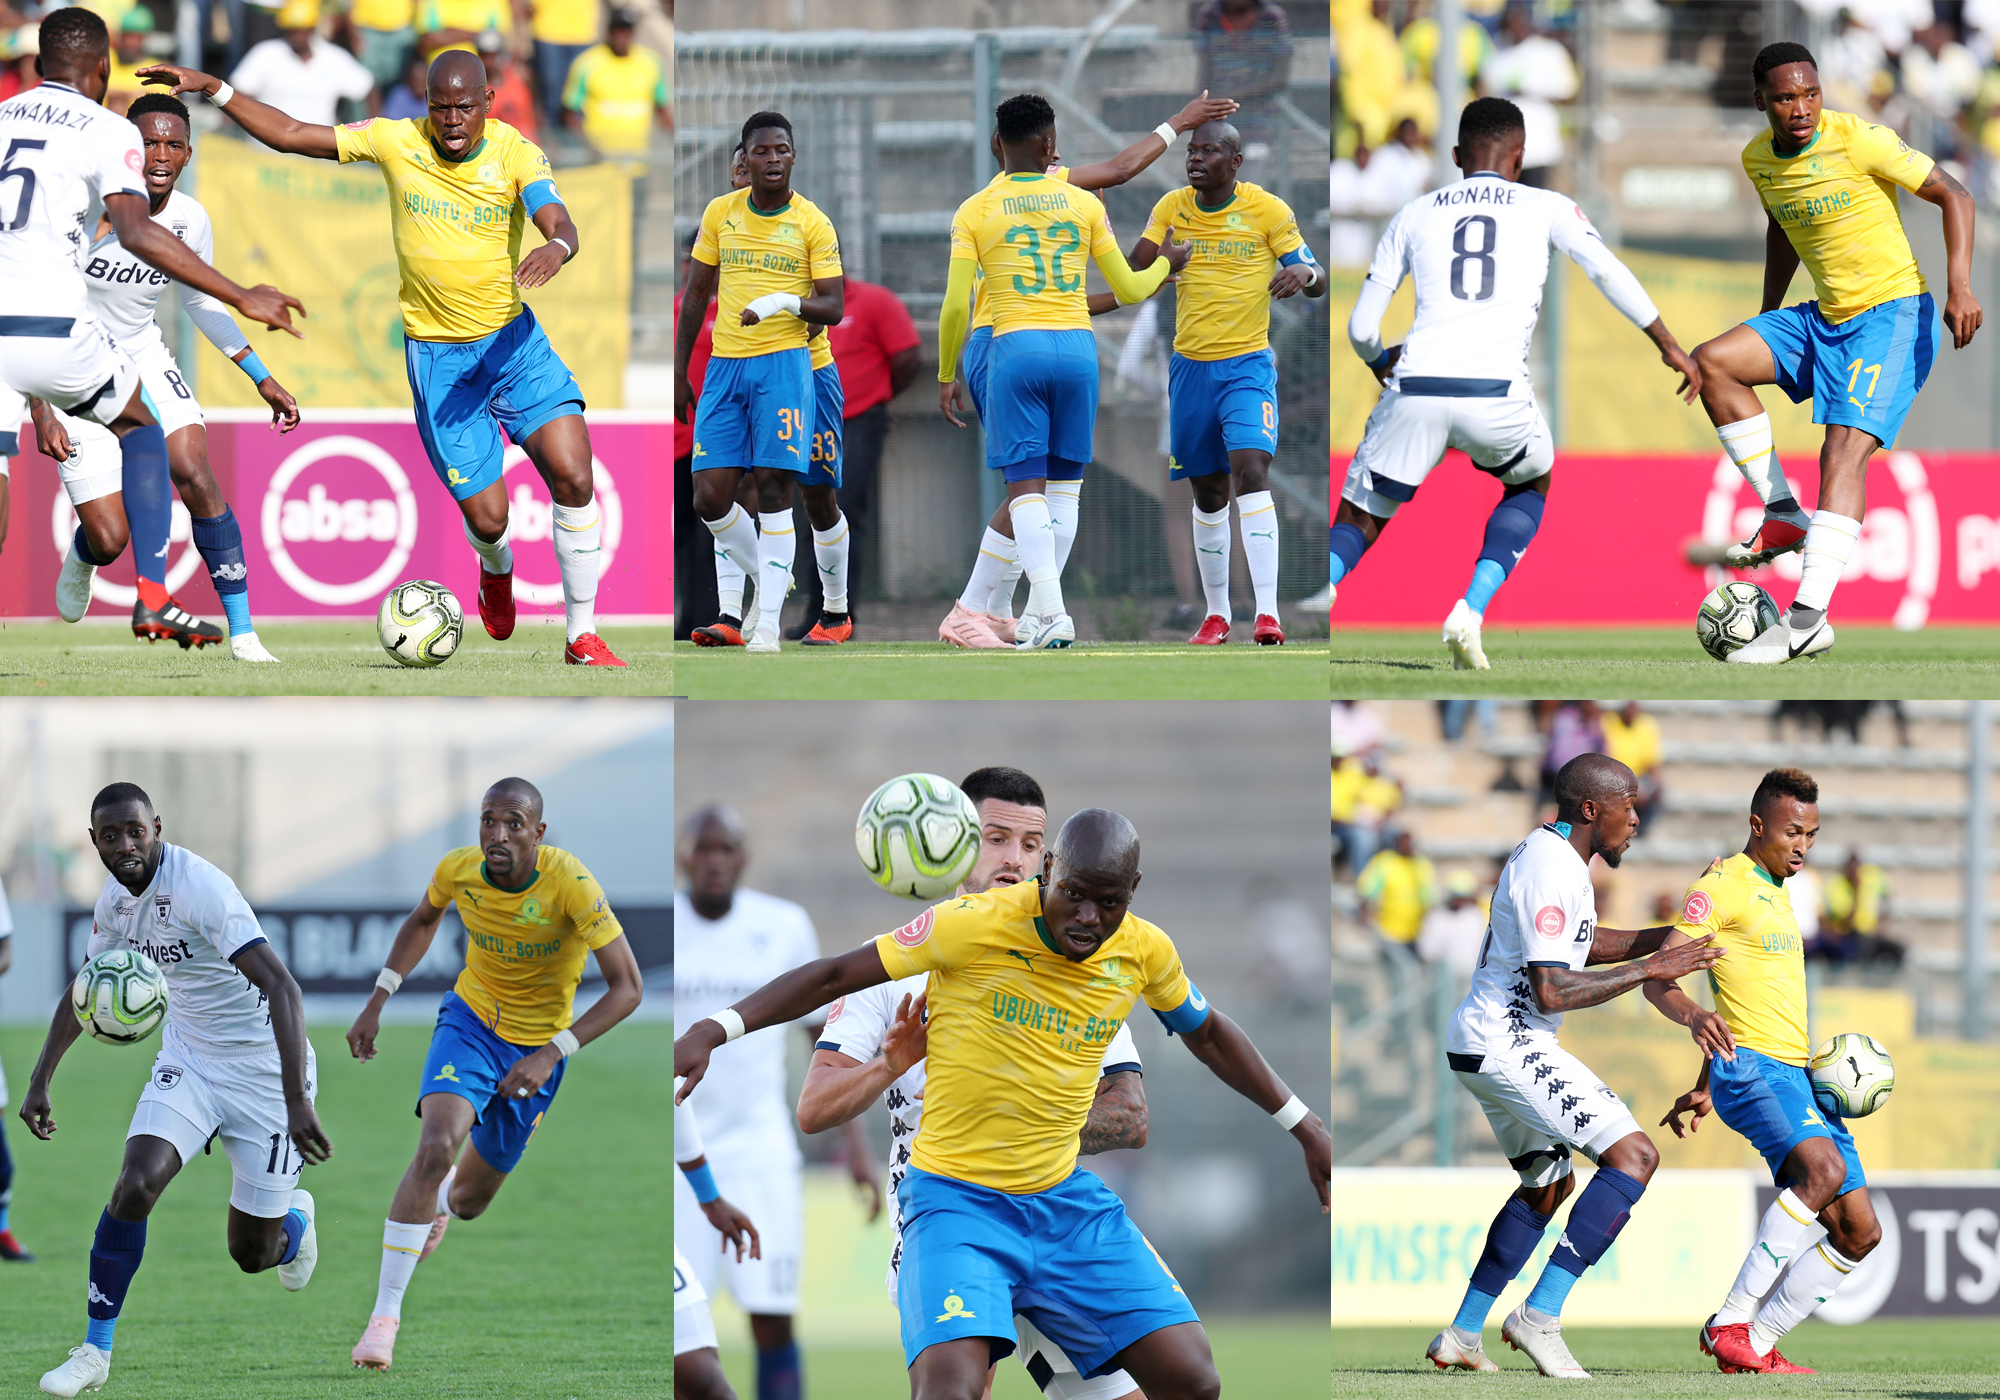 buy online 58665 a5492 The Brazilians rounded up the weekend s action with a frustrating point at  home to table leaders Bidvest Wits.